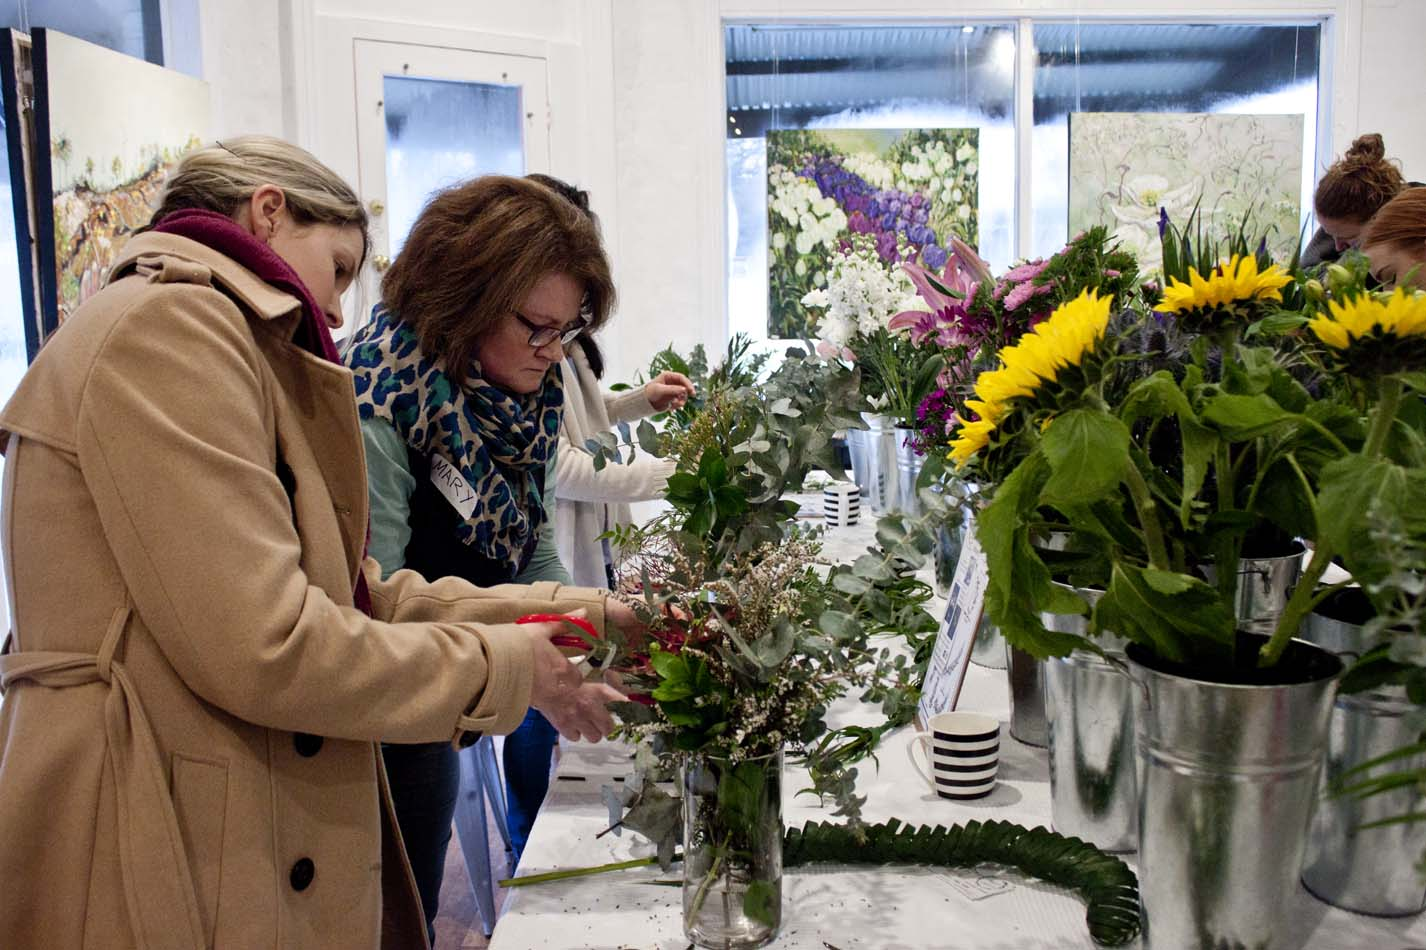 Flower Arranging Workshop Megan Claire Floral Design - The Corner Store Gallery, photograph by Madeline Young